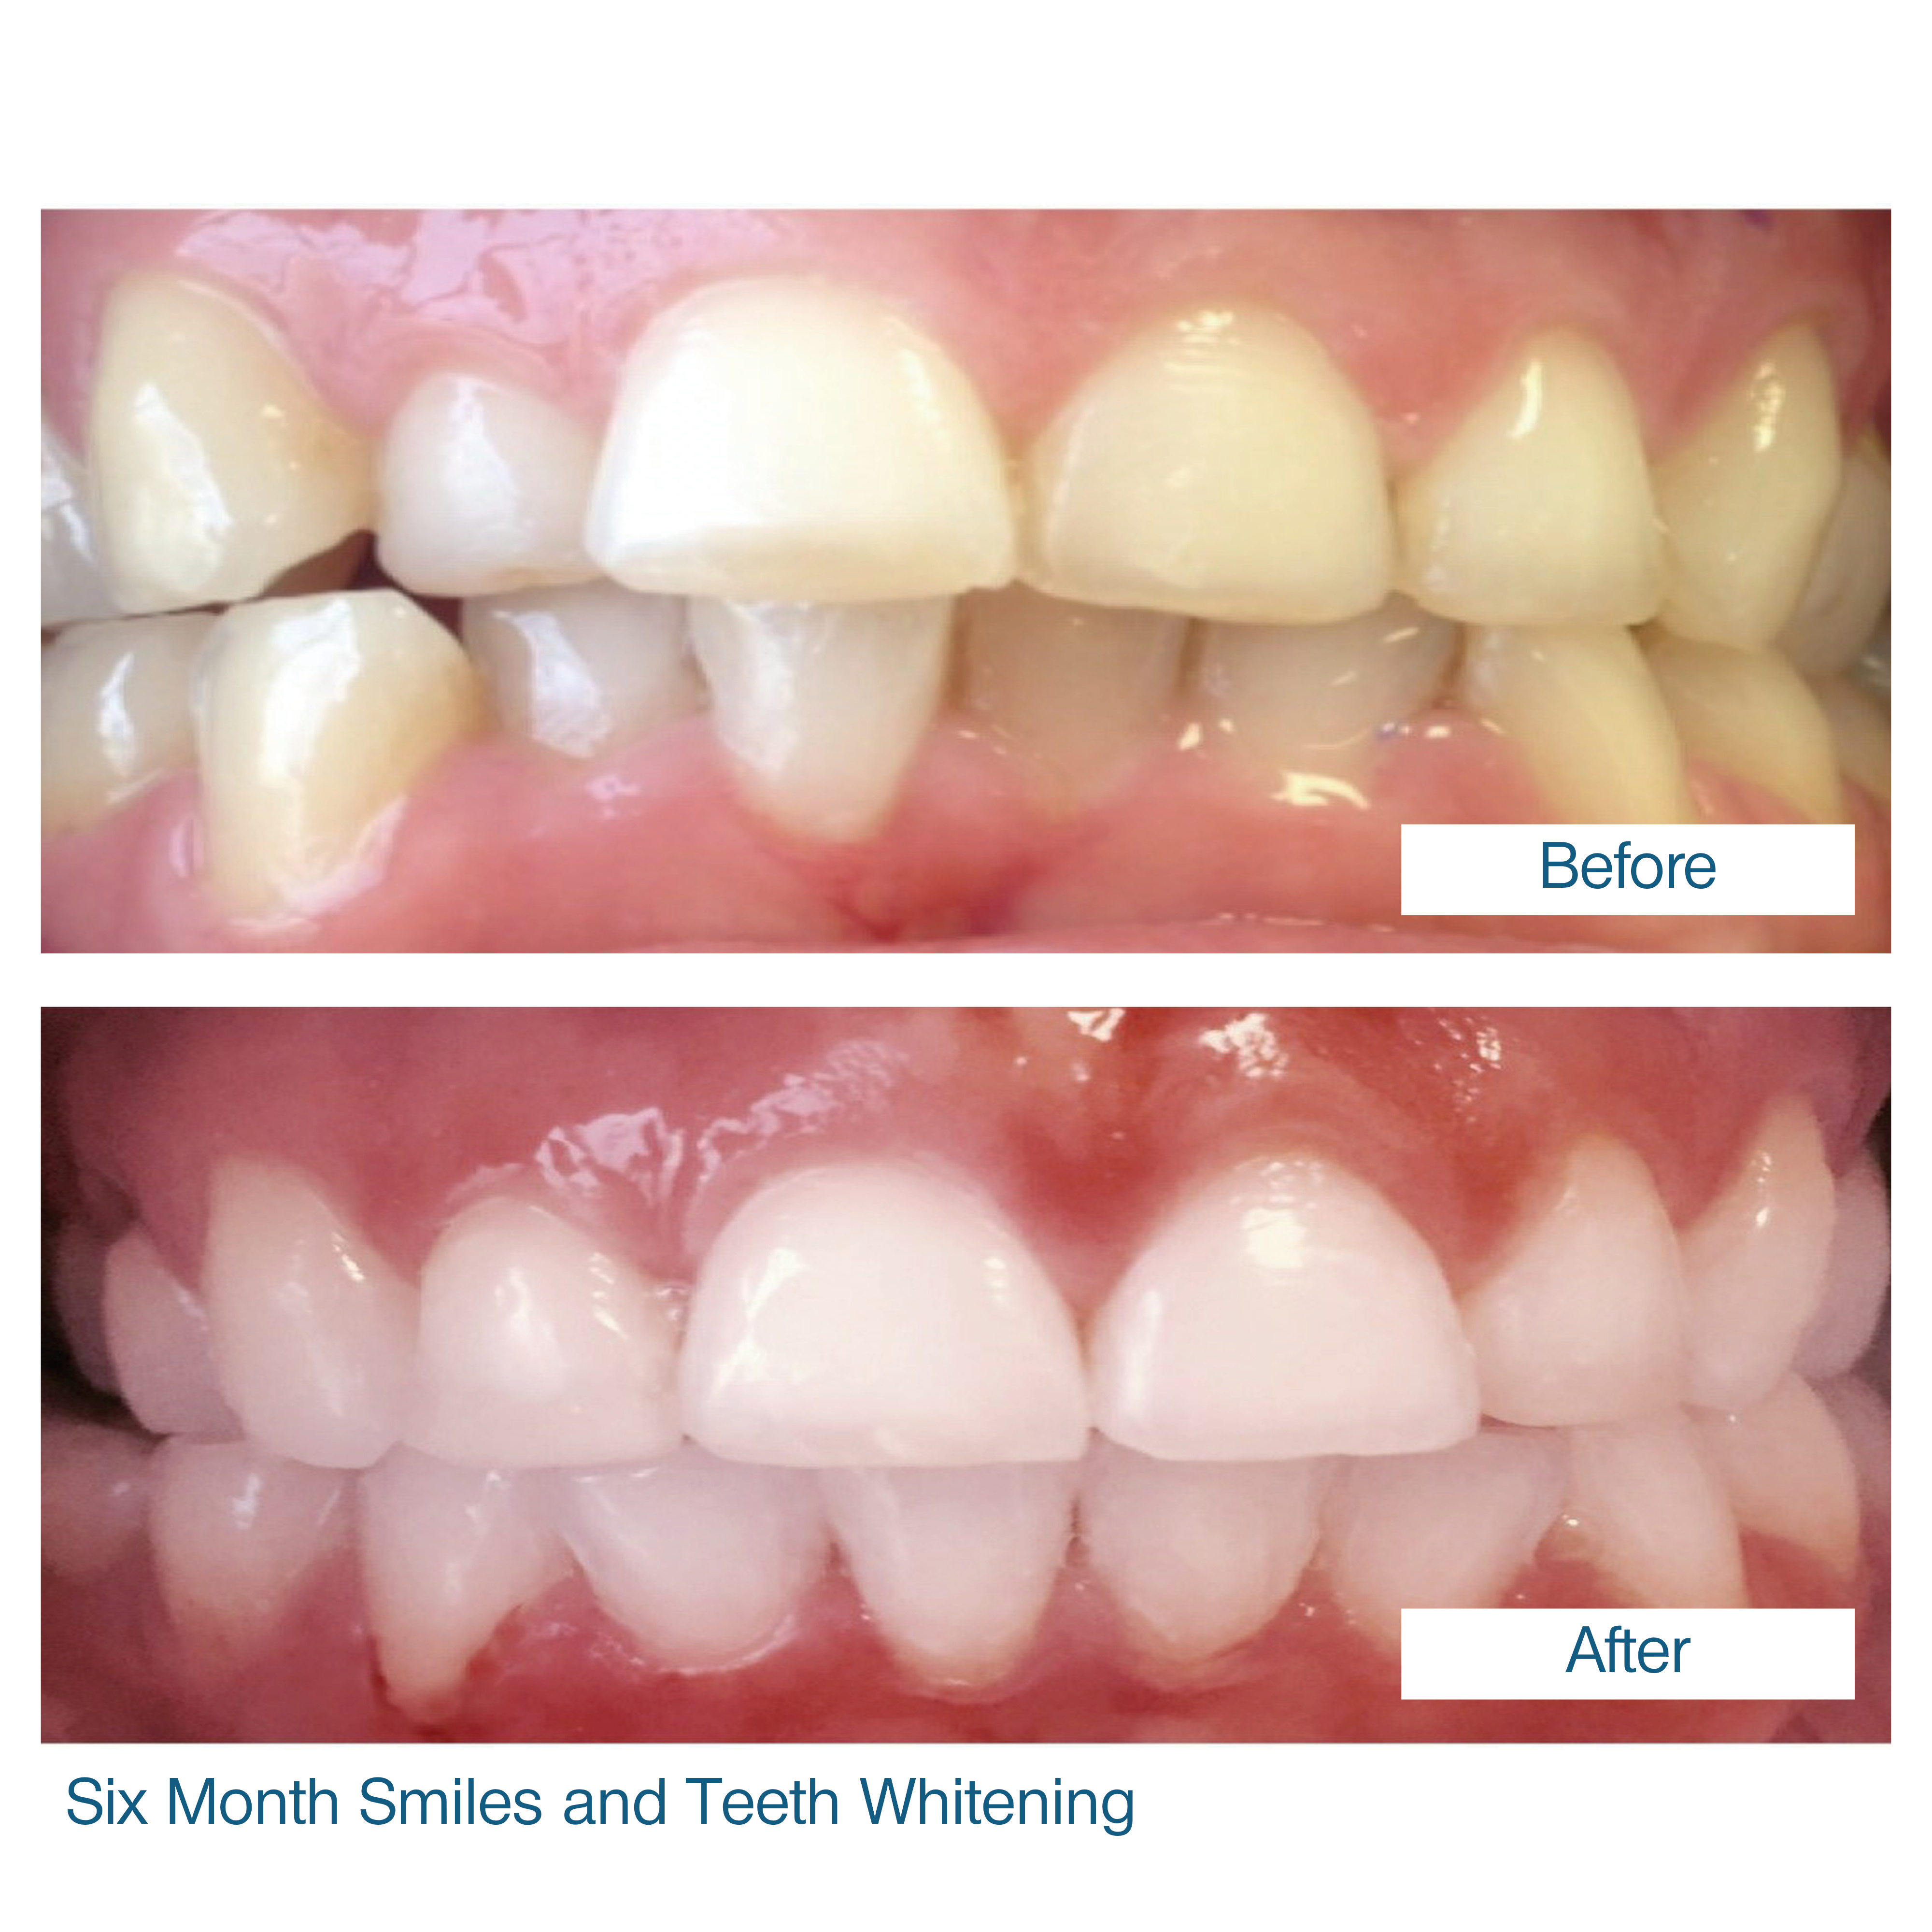 Six month smile by Edinburgh dentist